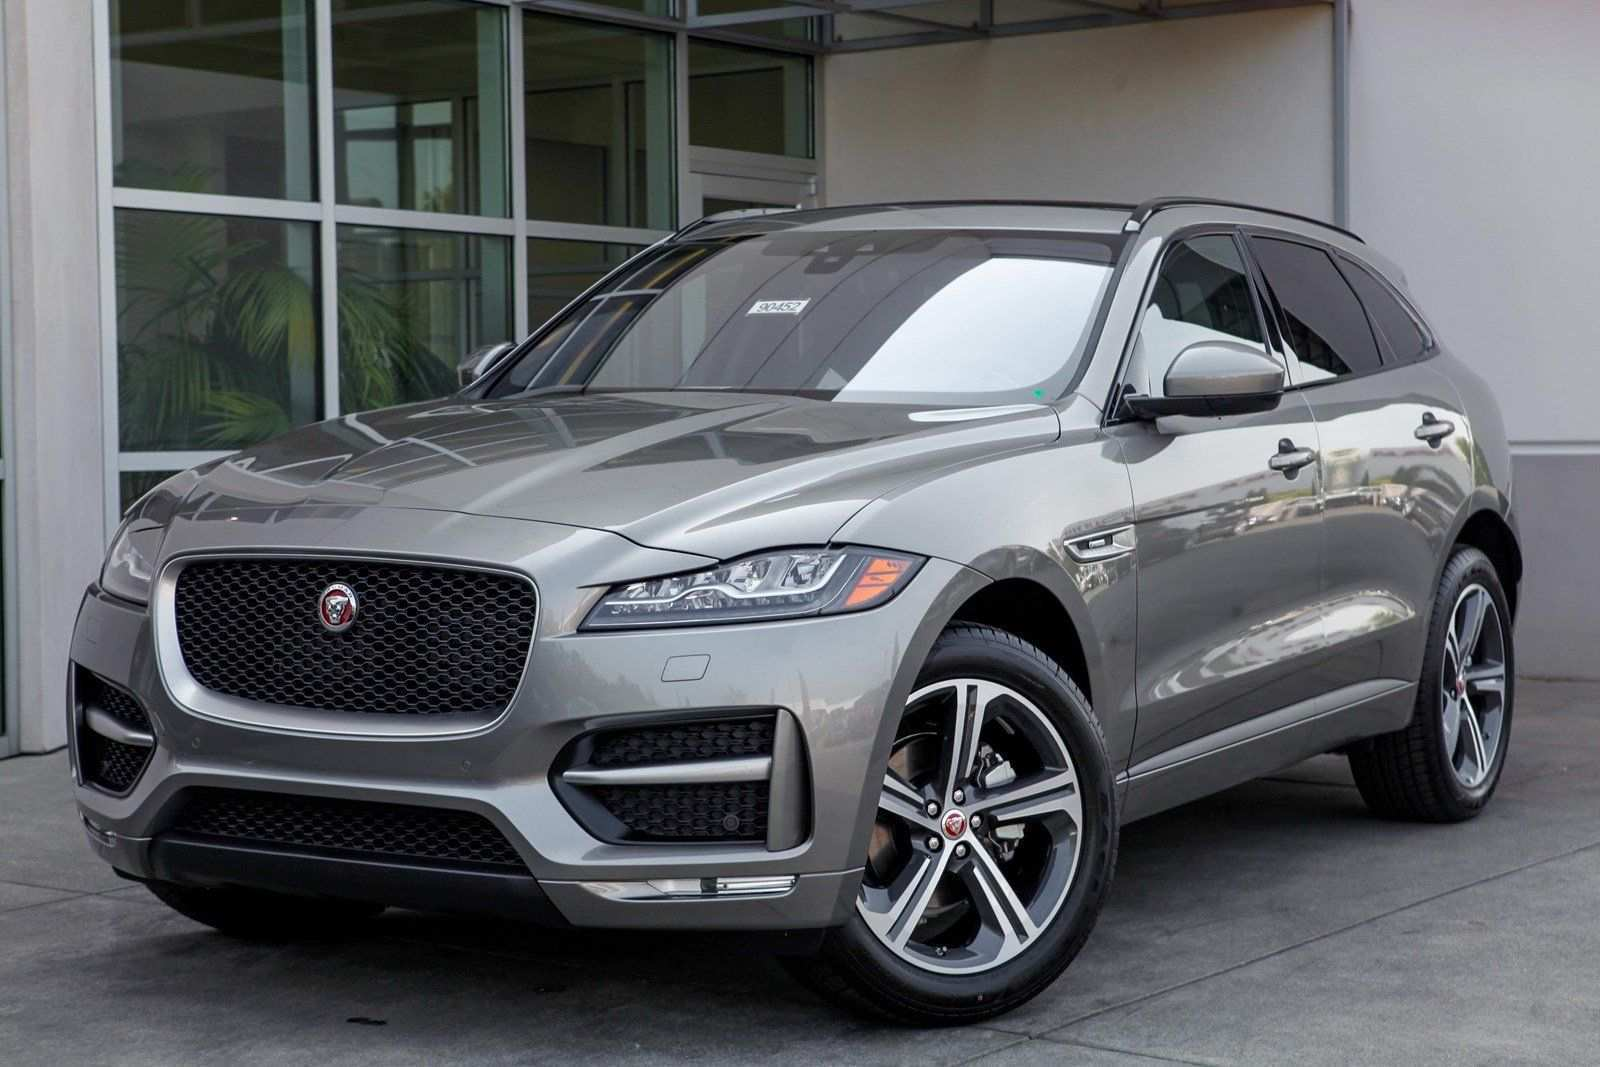 42 A 2019 Jaguar Station Wagon Spy Shoot